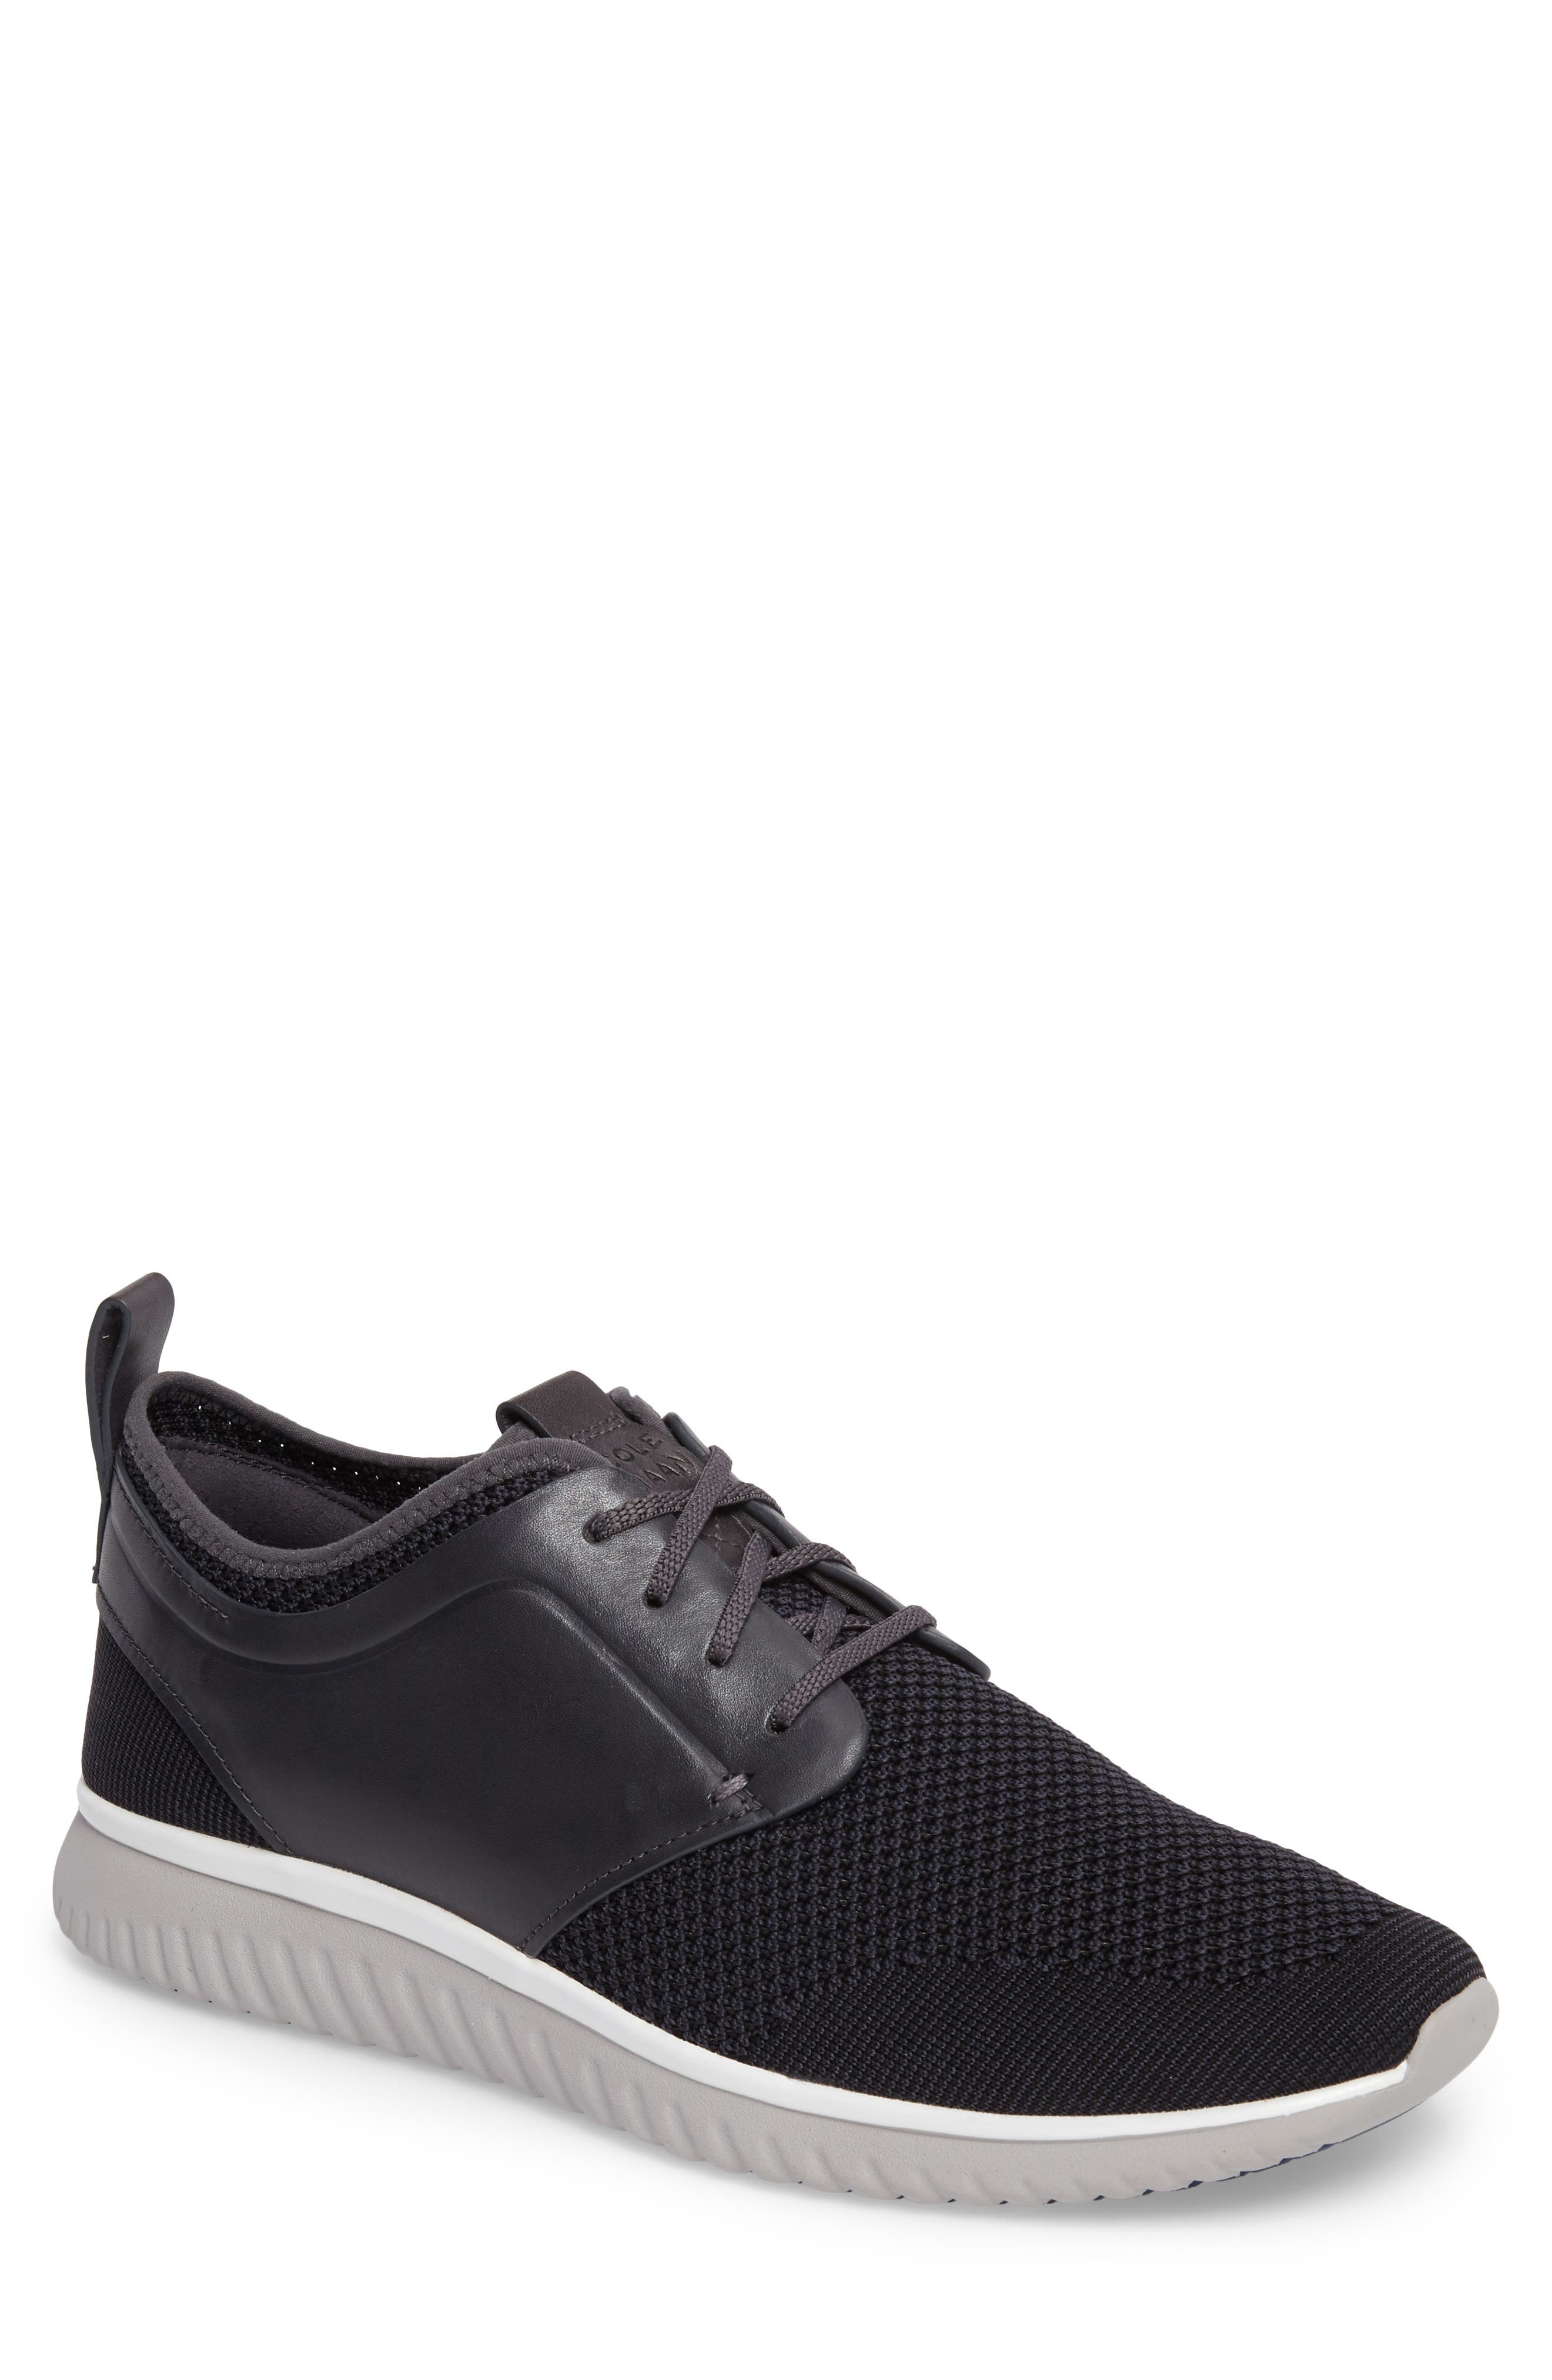 Grand Motion Knit Oxford,                         Main,                         color, 020